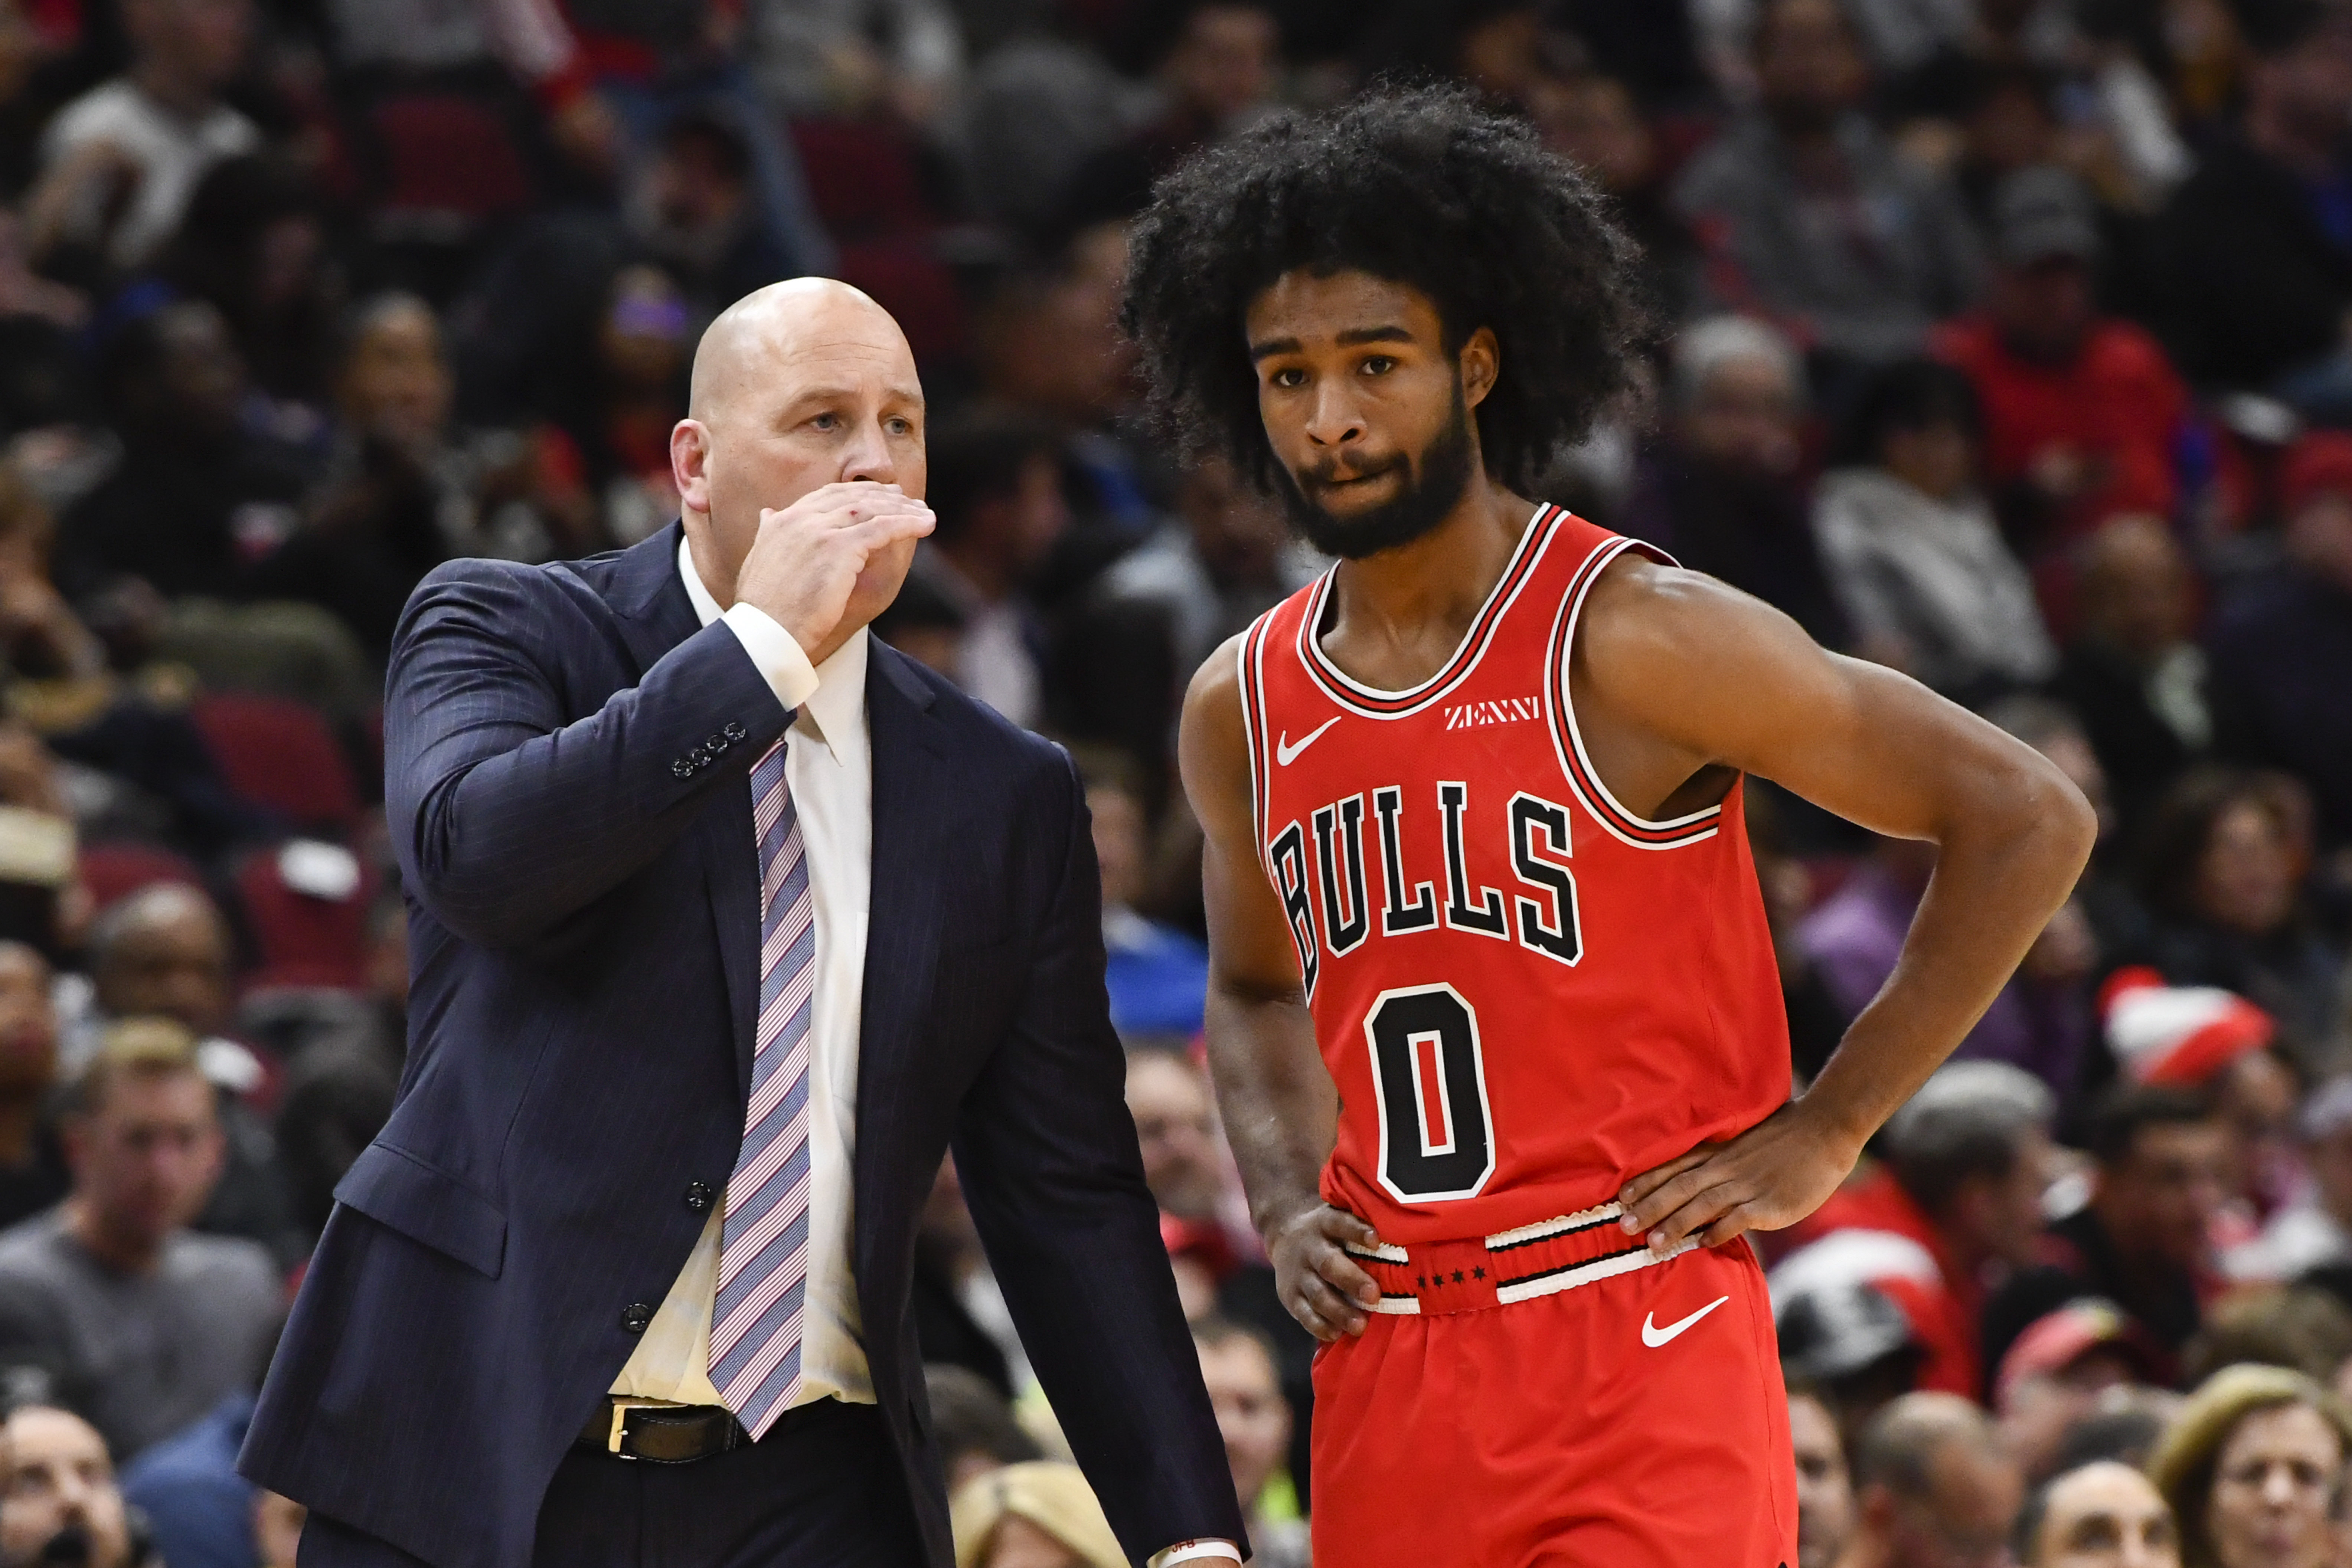 """""""I don't critique [rookie Coby White] on every moment or everything,'' Bulls coach Jim Boylen said. """"I try to let him play, let him figure it out a little bit. I don't put titles on him, and I don't give him a position title."""""""